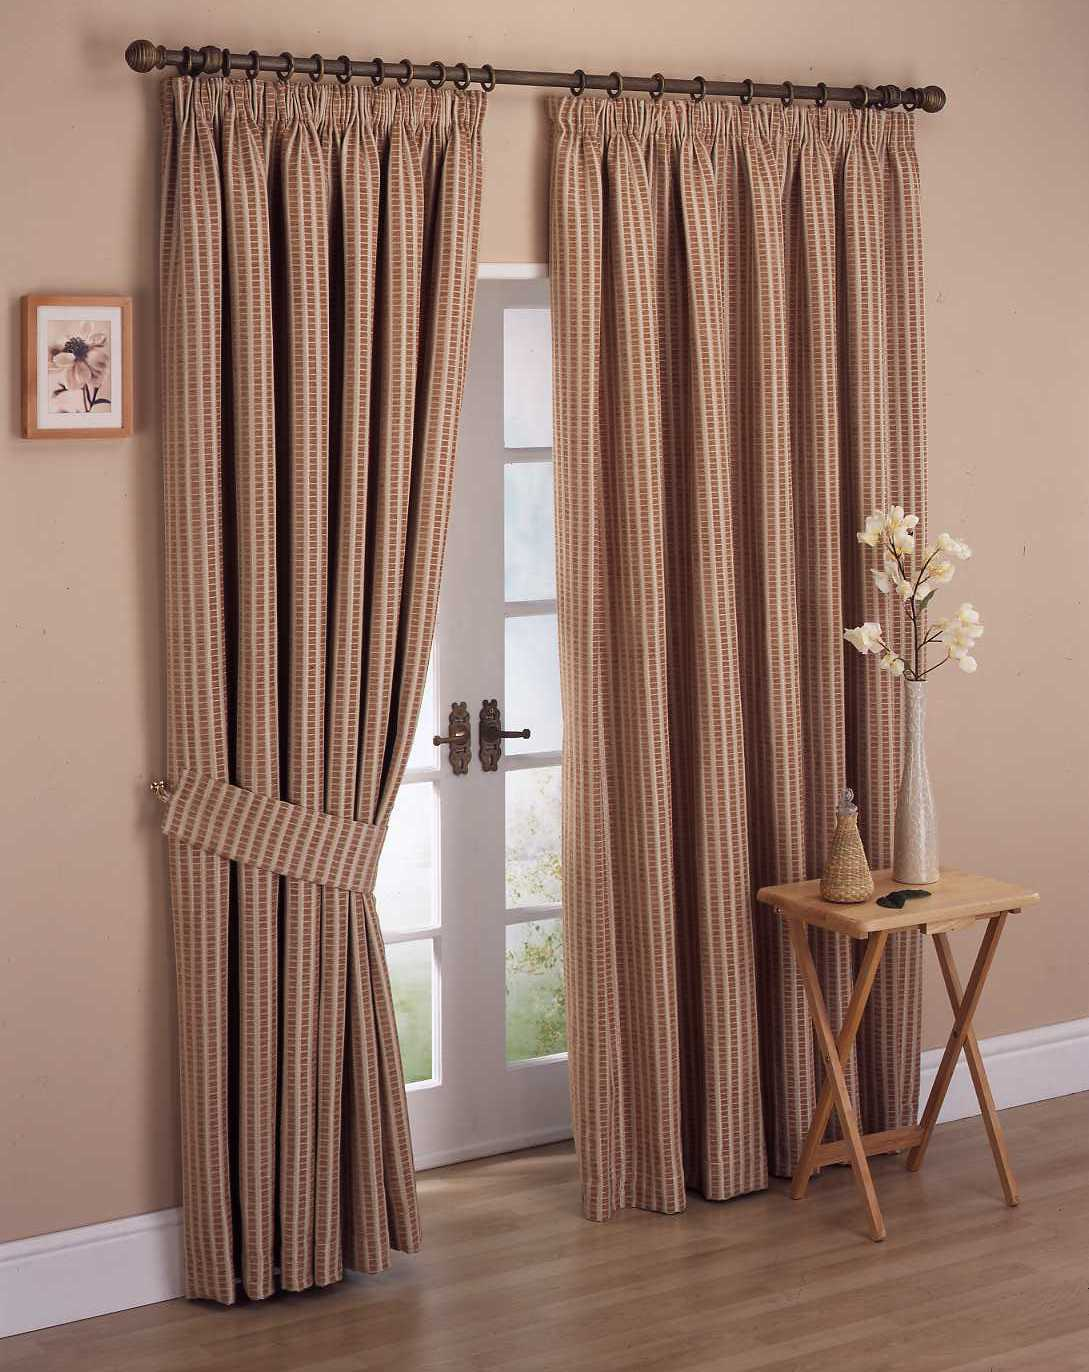 Top catalog of classic curtains designs 2013 Bedroom curtain ideas